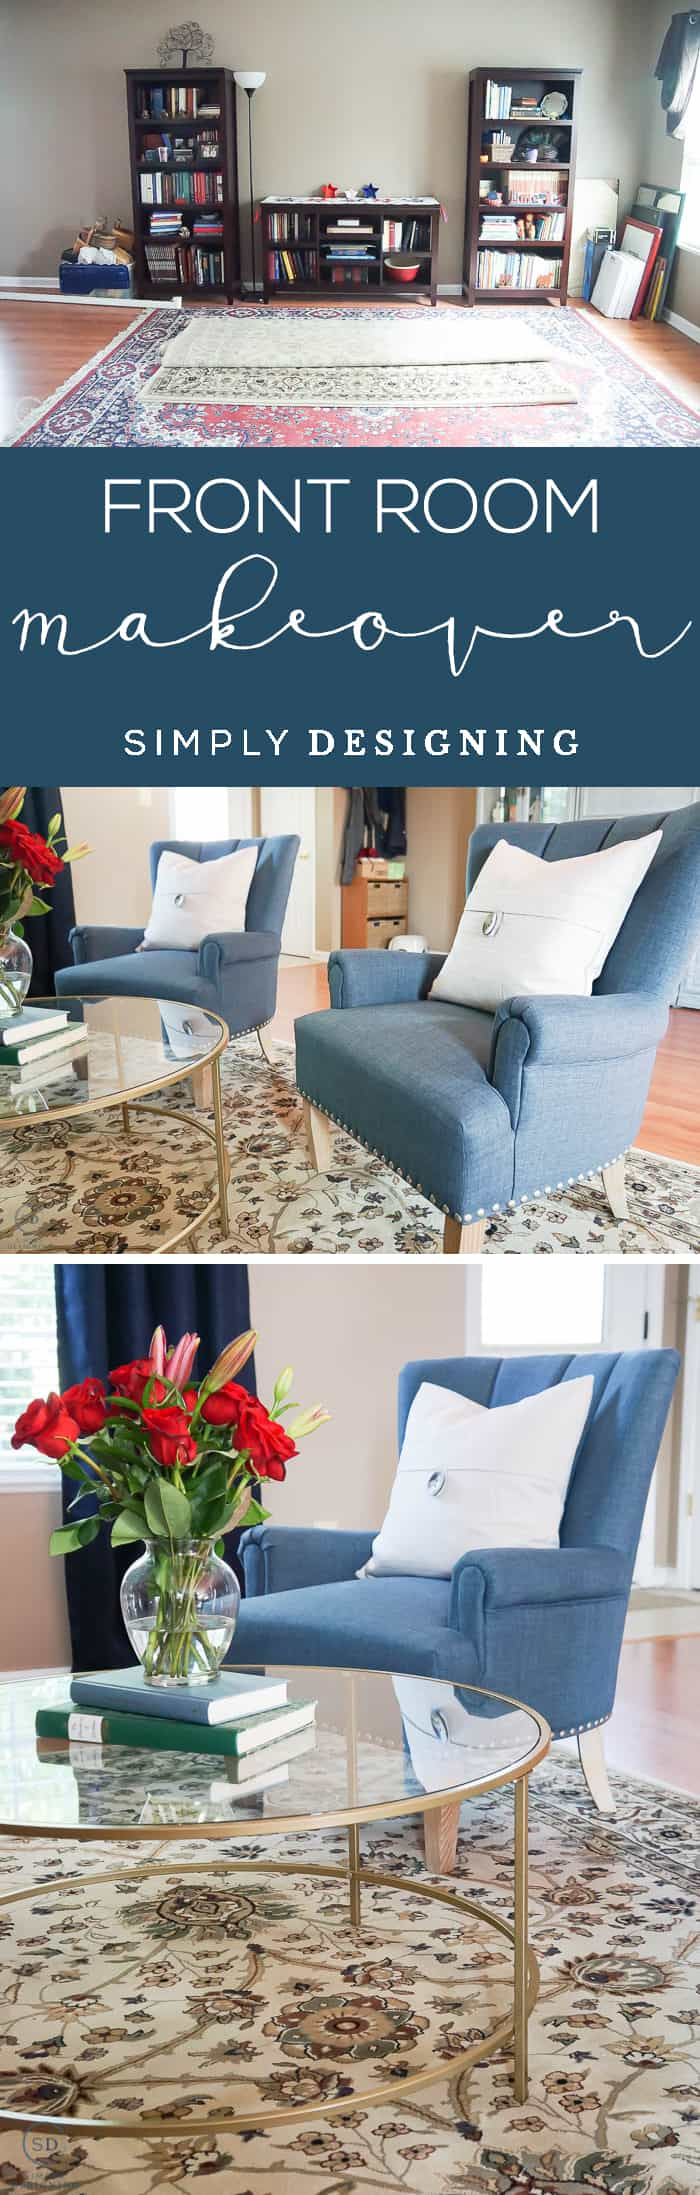 Front Room Makeover - it is amazing what a few changes can make - we added furniture and decorated it a bit to create a beautiful reading area that is so functional too